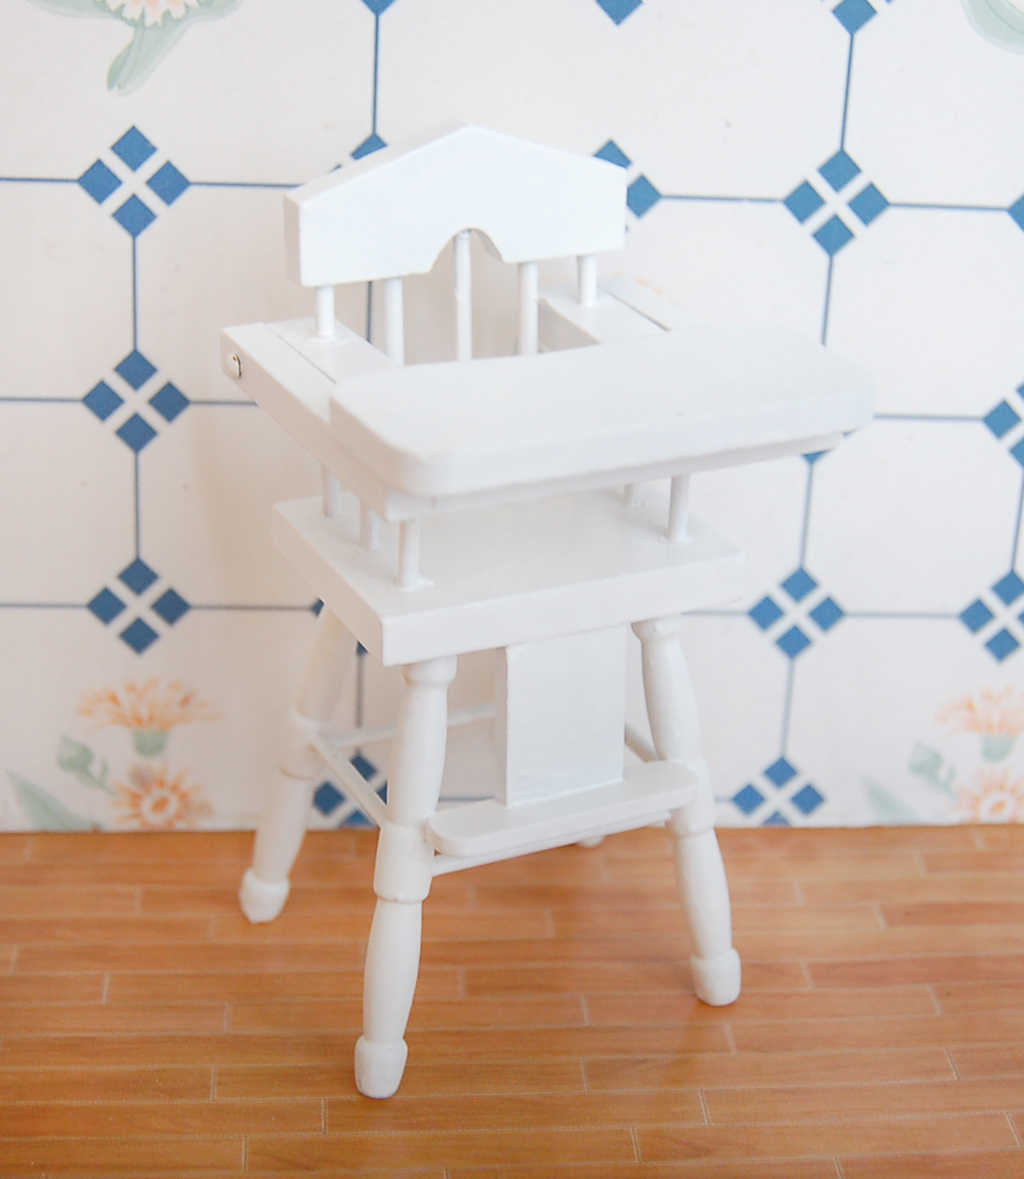 New Dollhouse Miniature Furniture Wooden Baby Bedroom set 1/12 White Doll House Decoration Dolls Accessory Classic Toy for Child